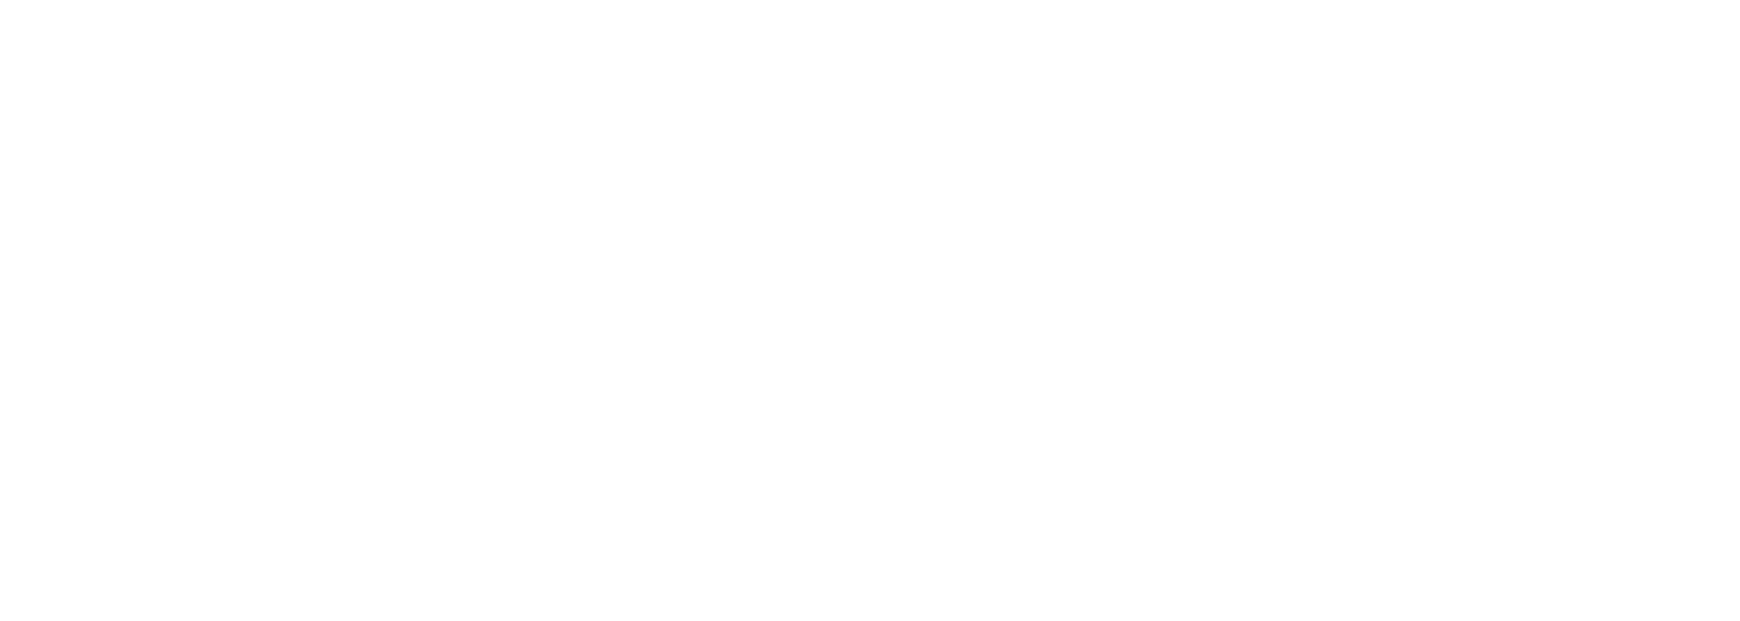 Life-Cycle Financing Logo wht